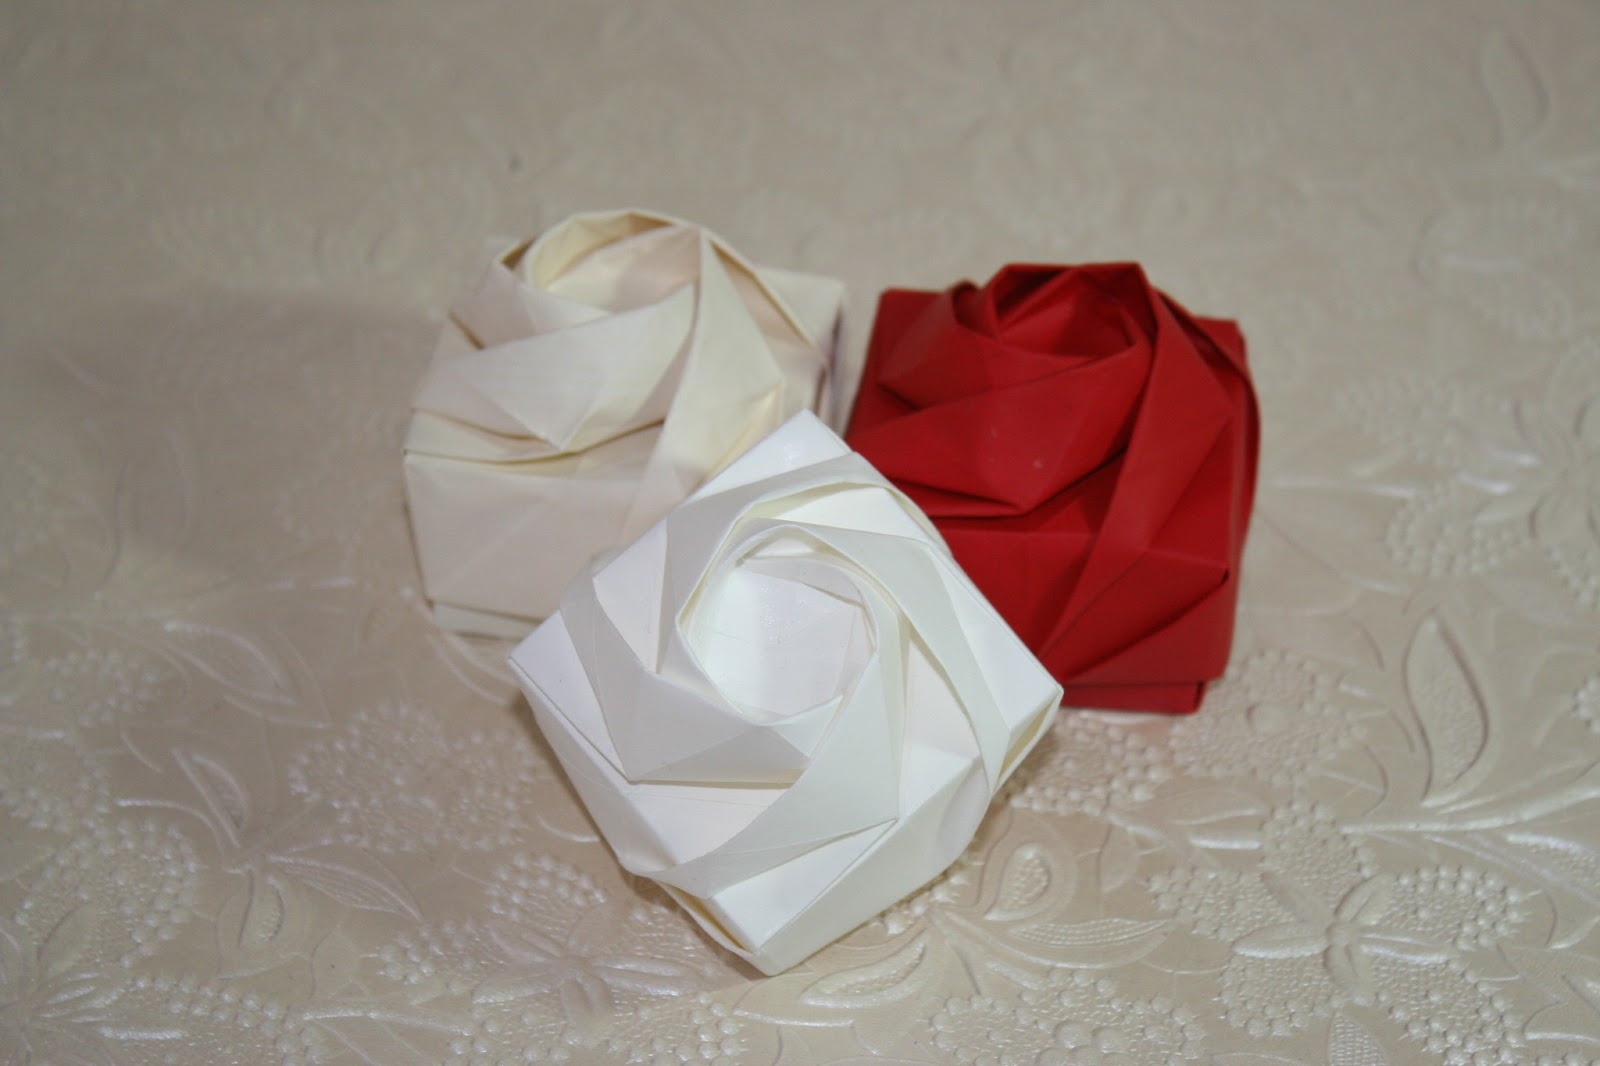 shin han gyo's origami rose box - photo#18